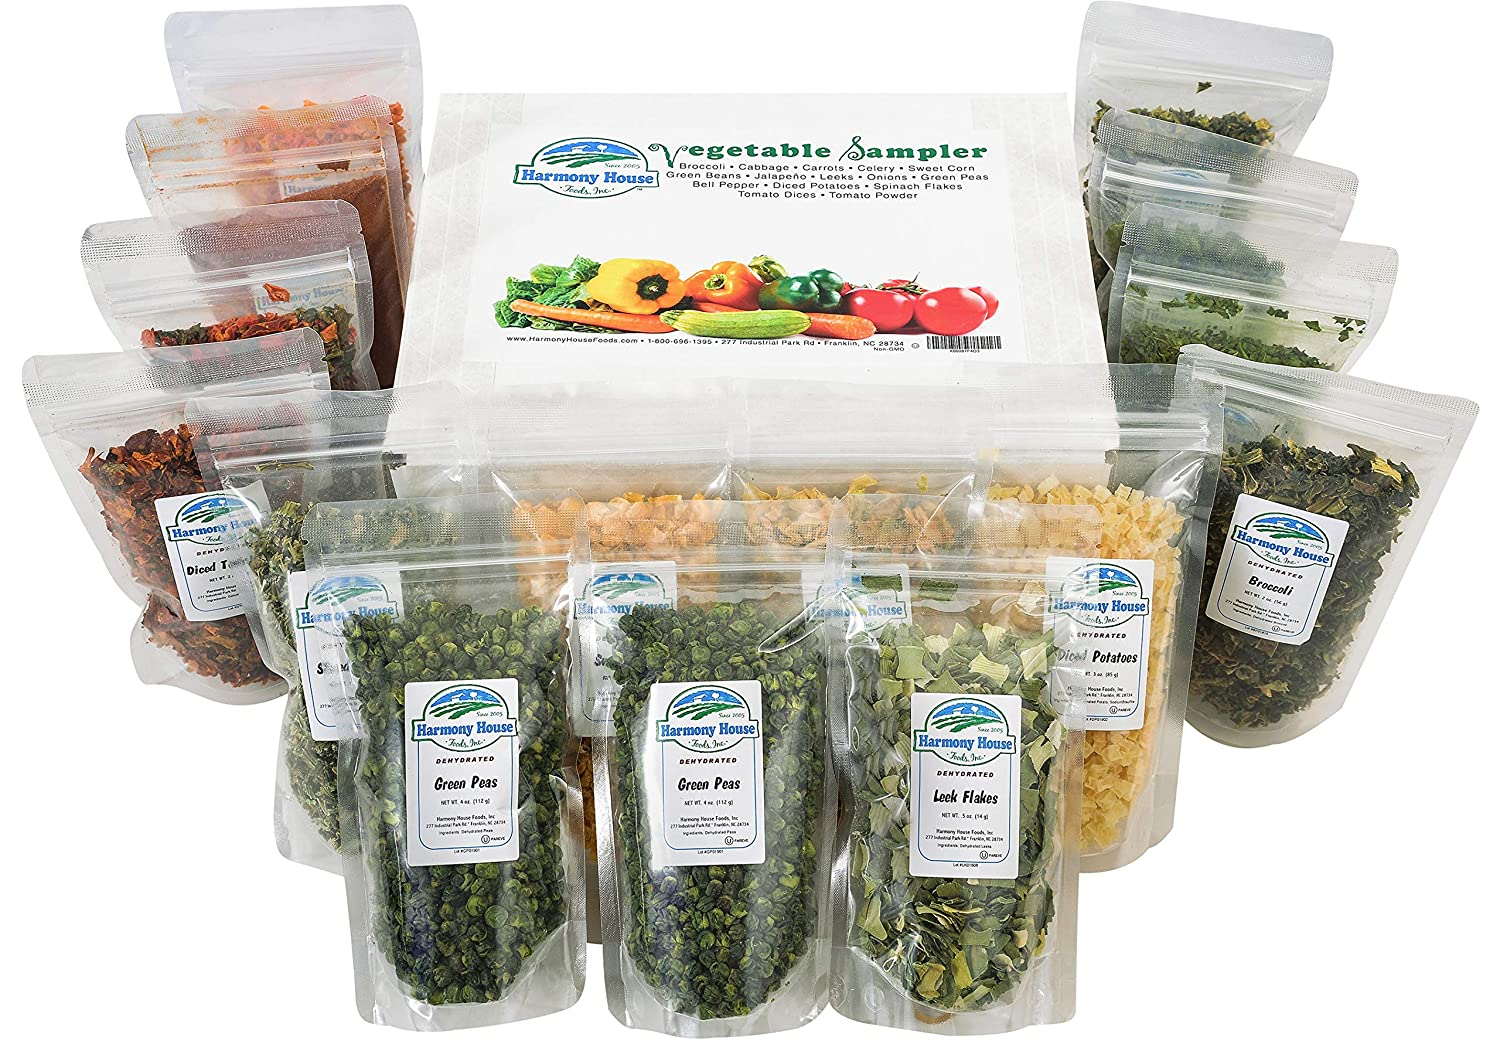 Harmony House Dehydrated Vegetable Sampler – 15 Count Variety Pack, Resealable Zip Pouches, For Cooking, Camping, Emergency Supply and More